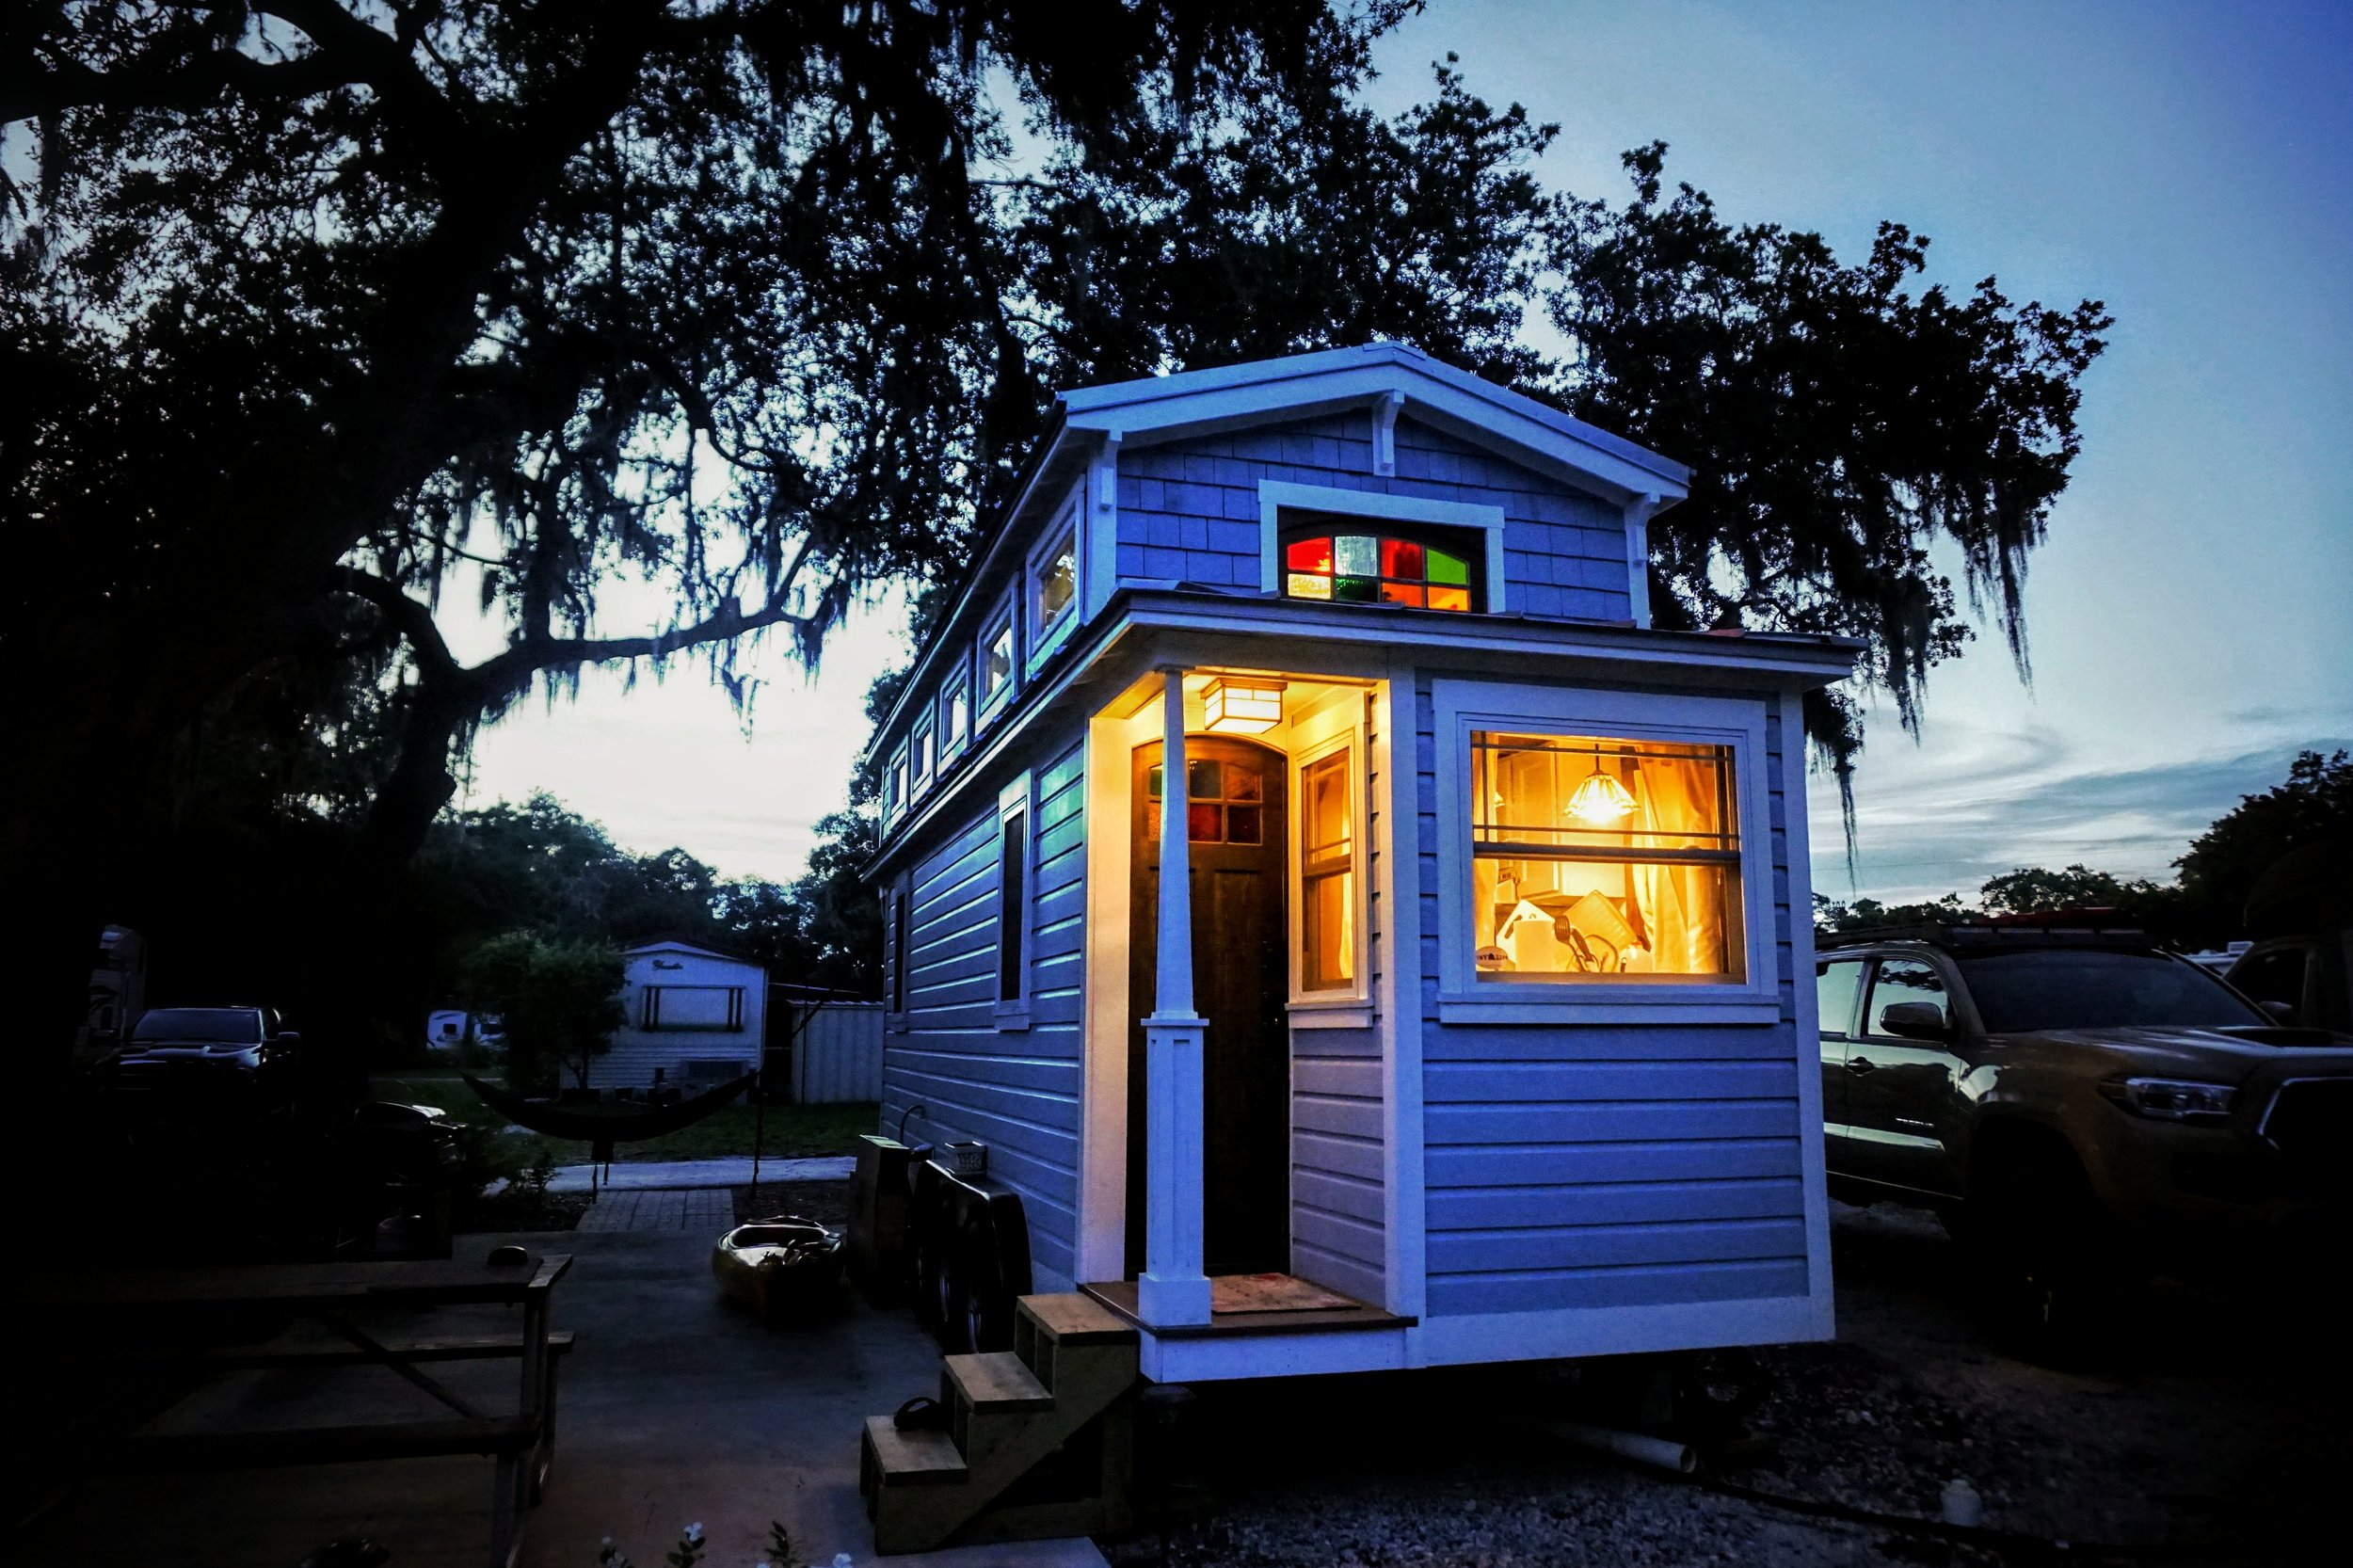 Tiny home living in an RV park